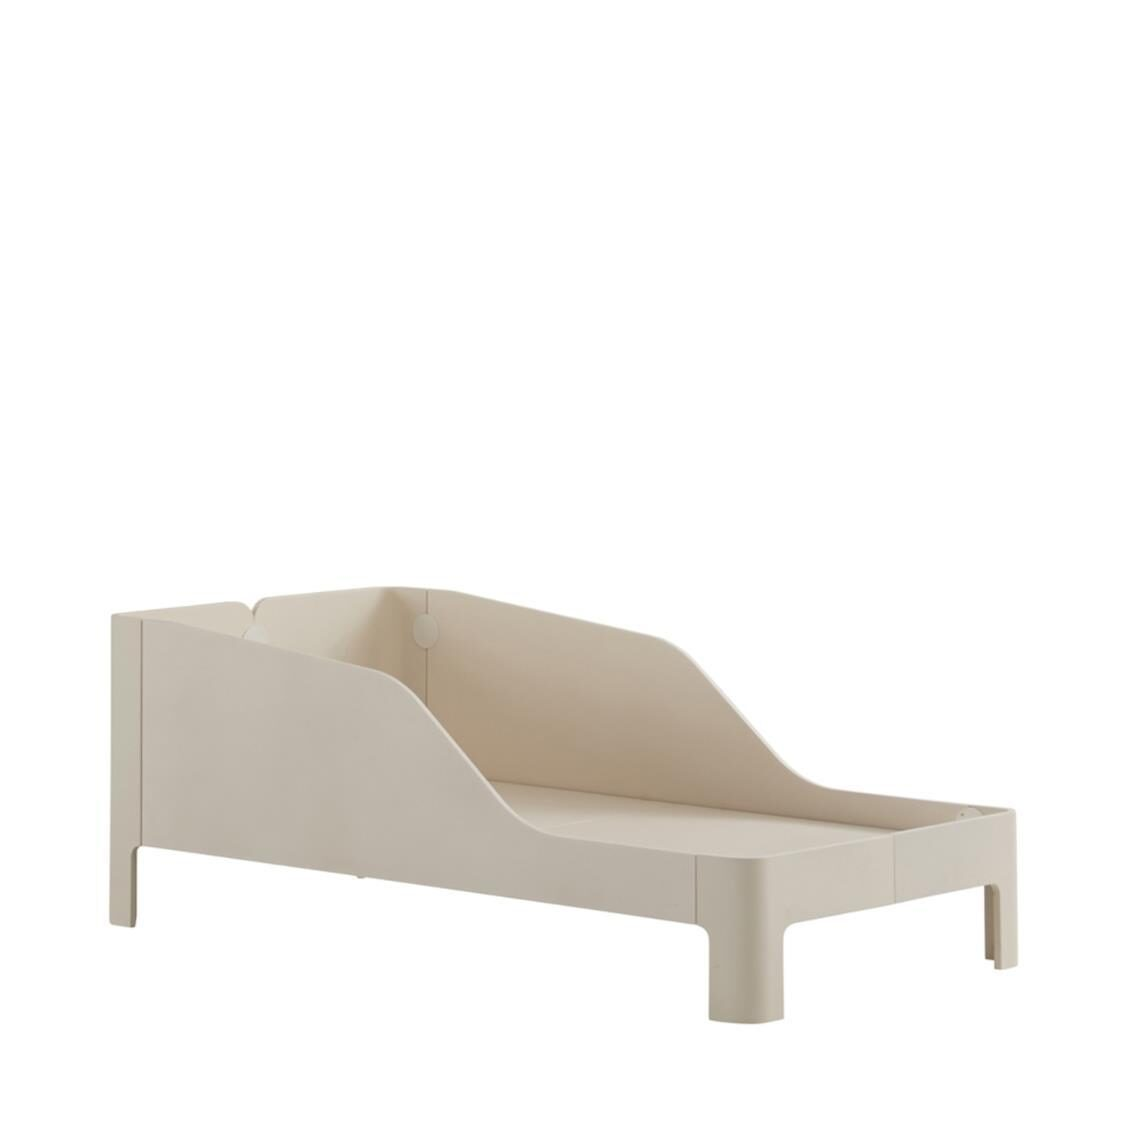 Iloom Tinkle Pop 1 Story Bed IV Ivory